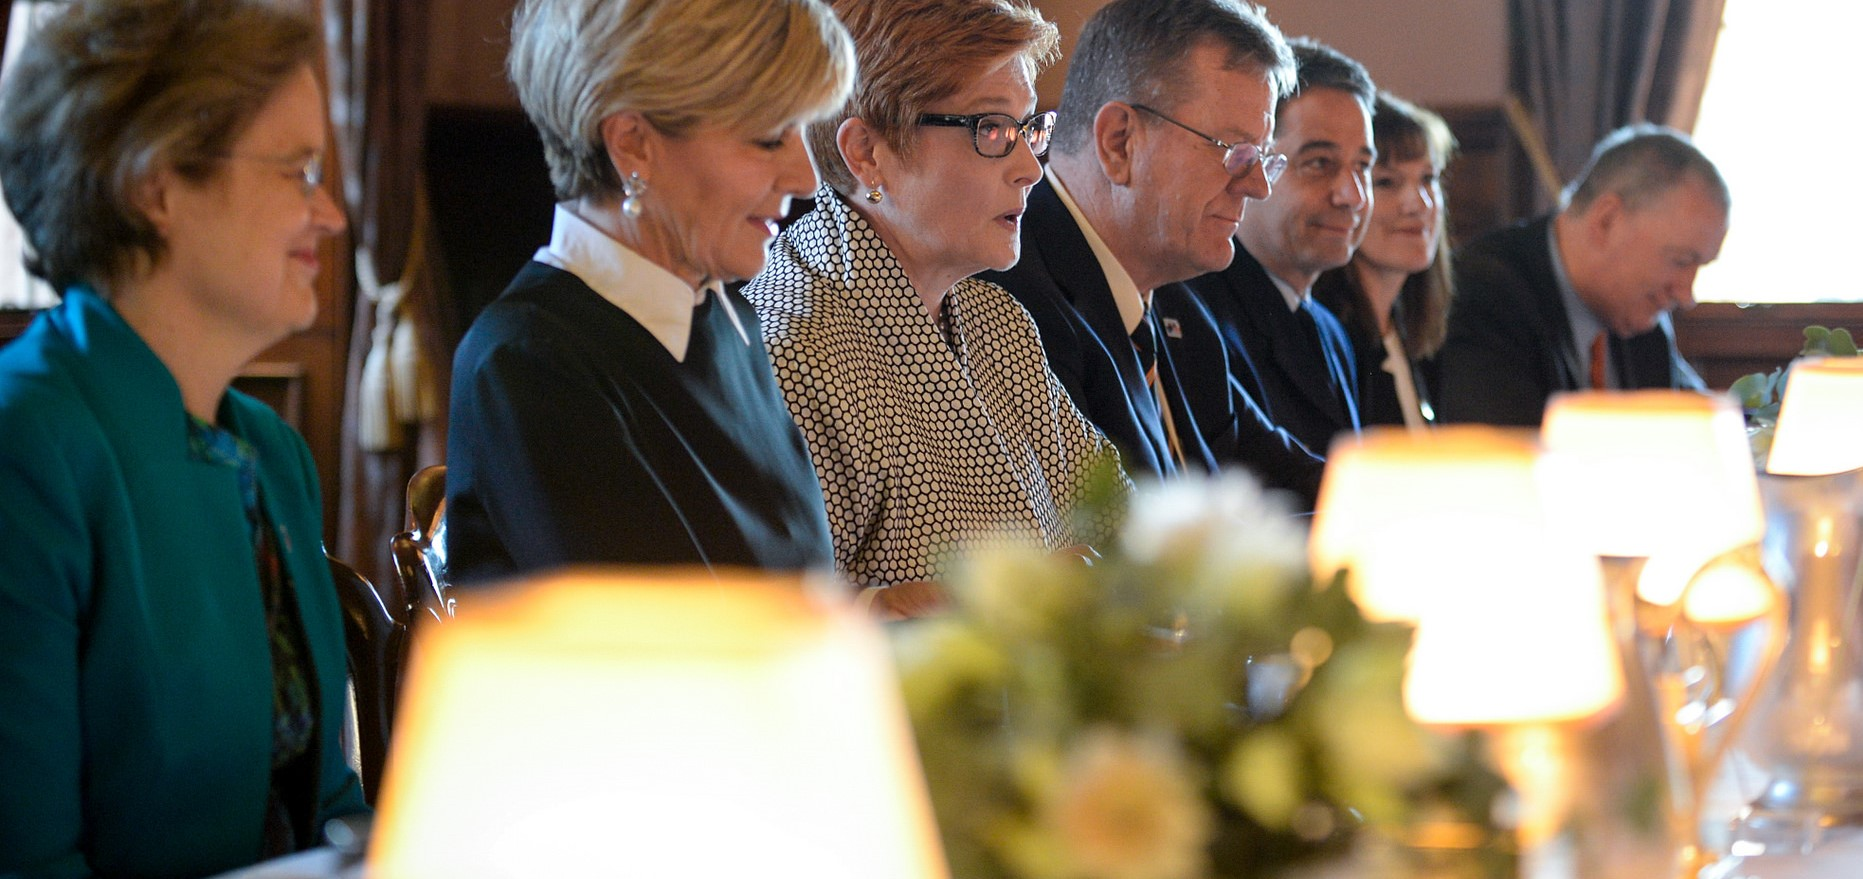 Foreign Minister Julie Bishop and Defence Minister Marise Payne in talks with US counterparts (Photo: US State department/Flickr)